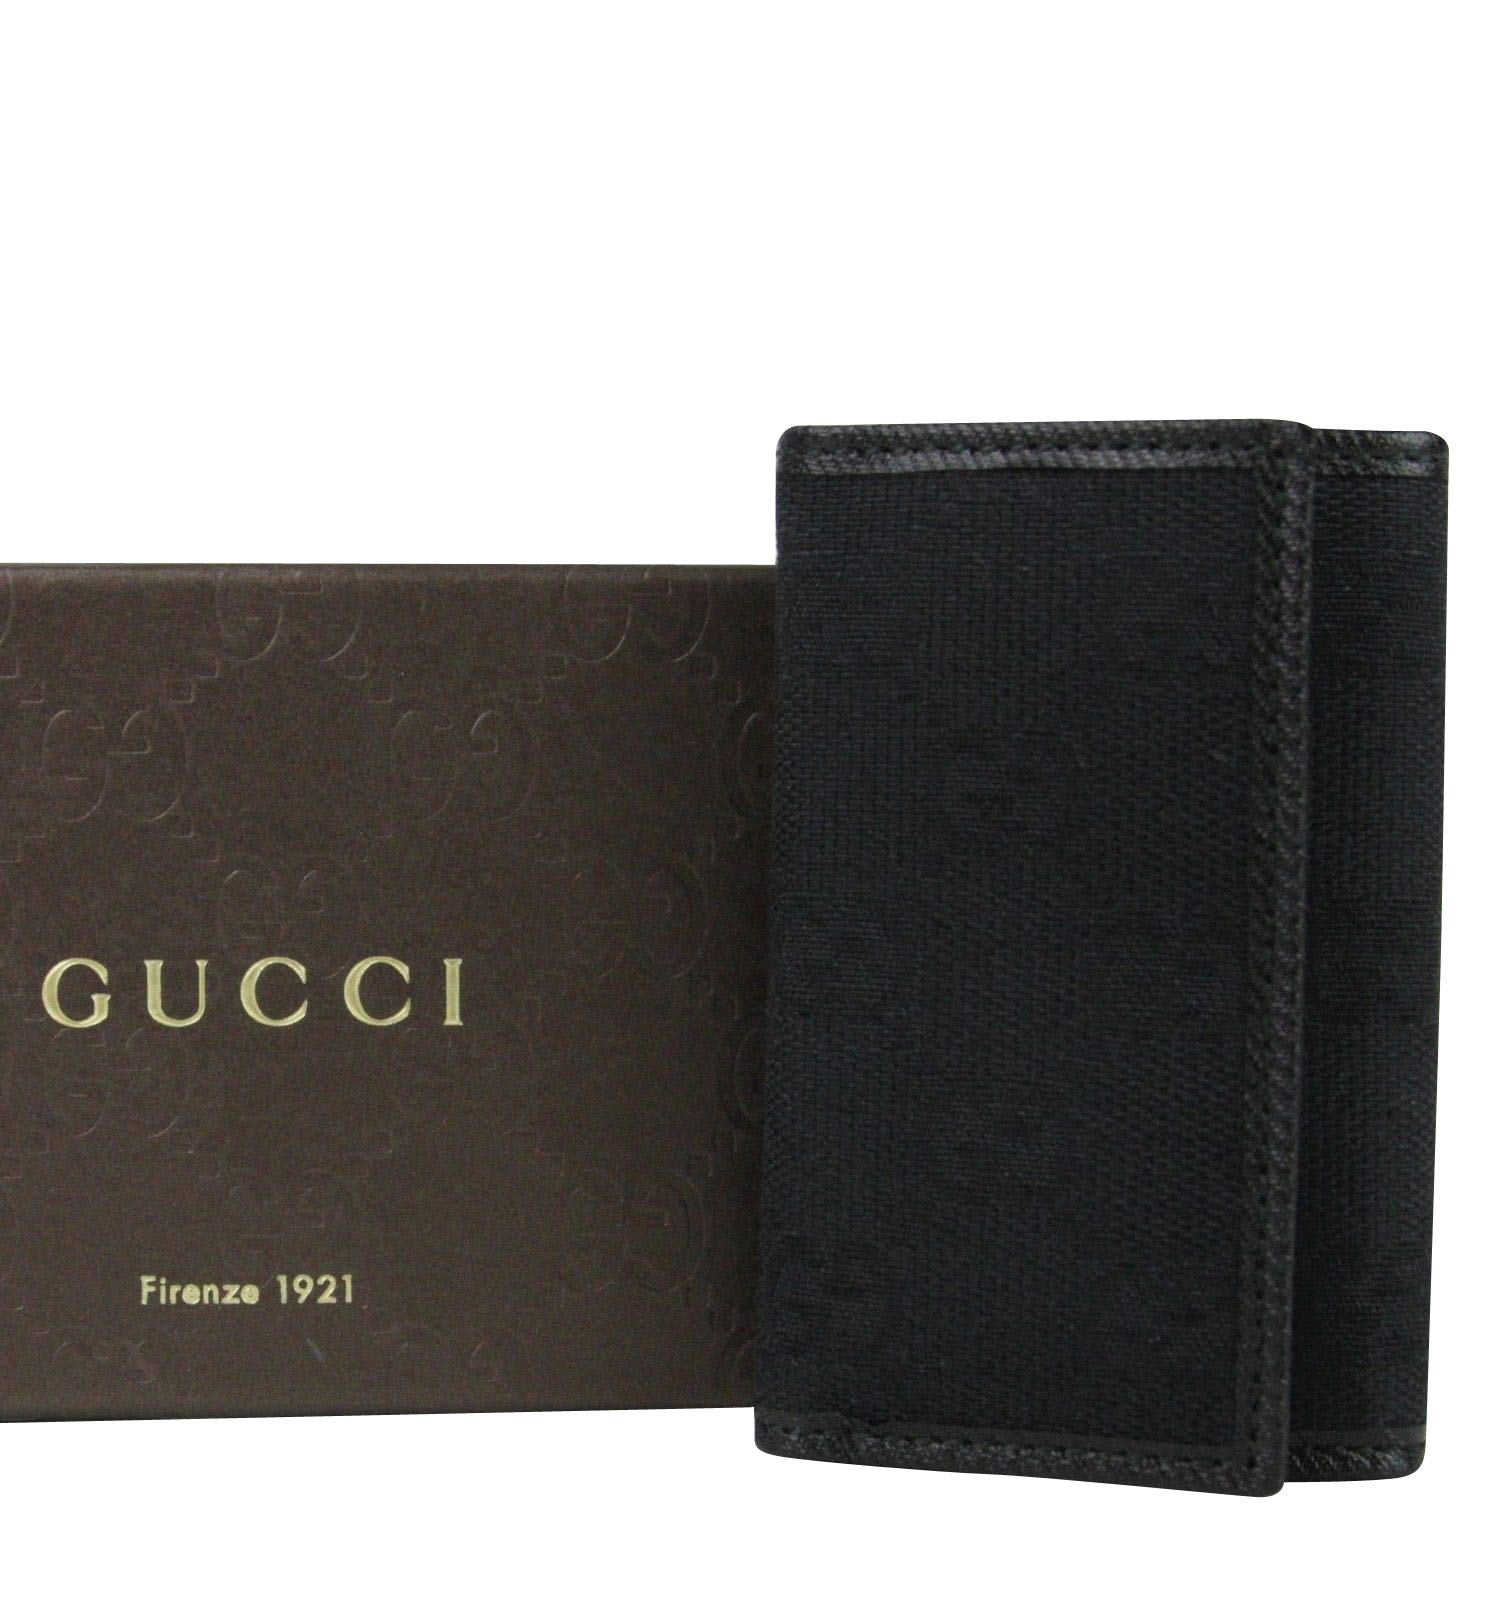 Gucci Unisex Trifold Black GG Canvas Key Chain Ring Holder 04564R 1000